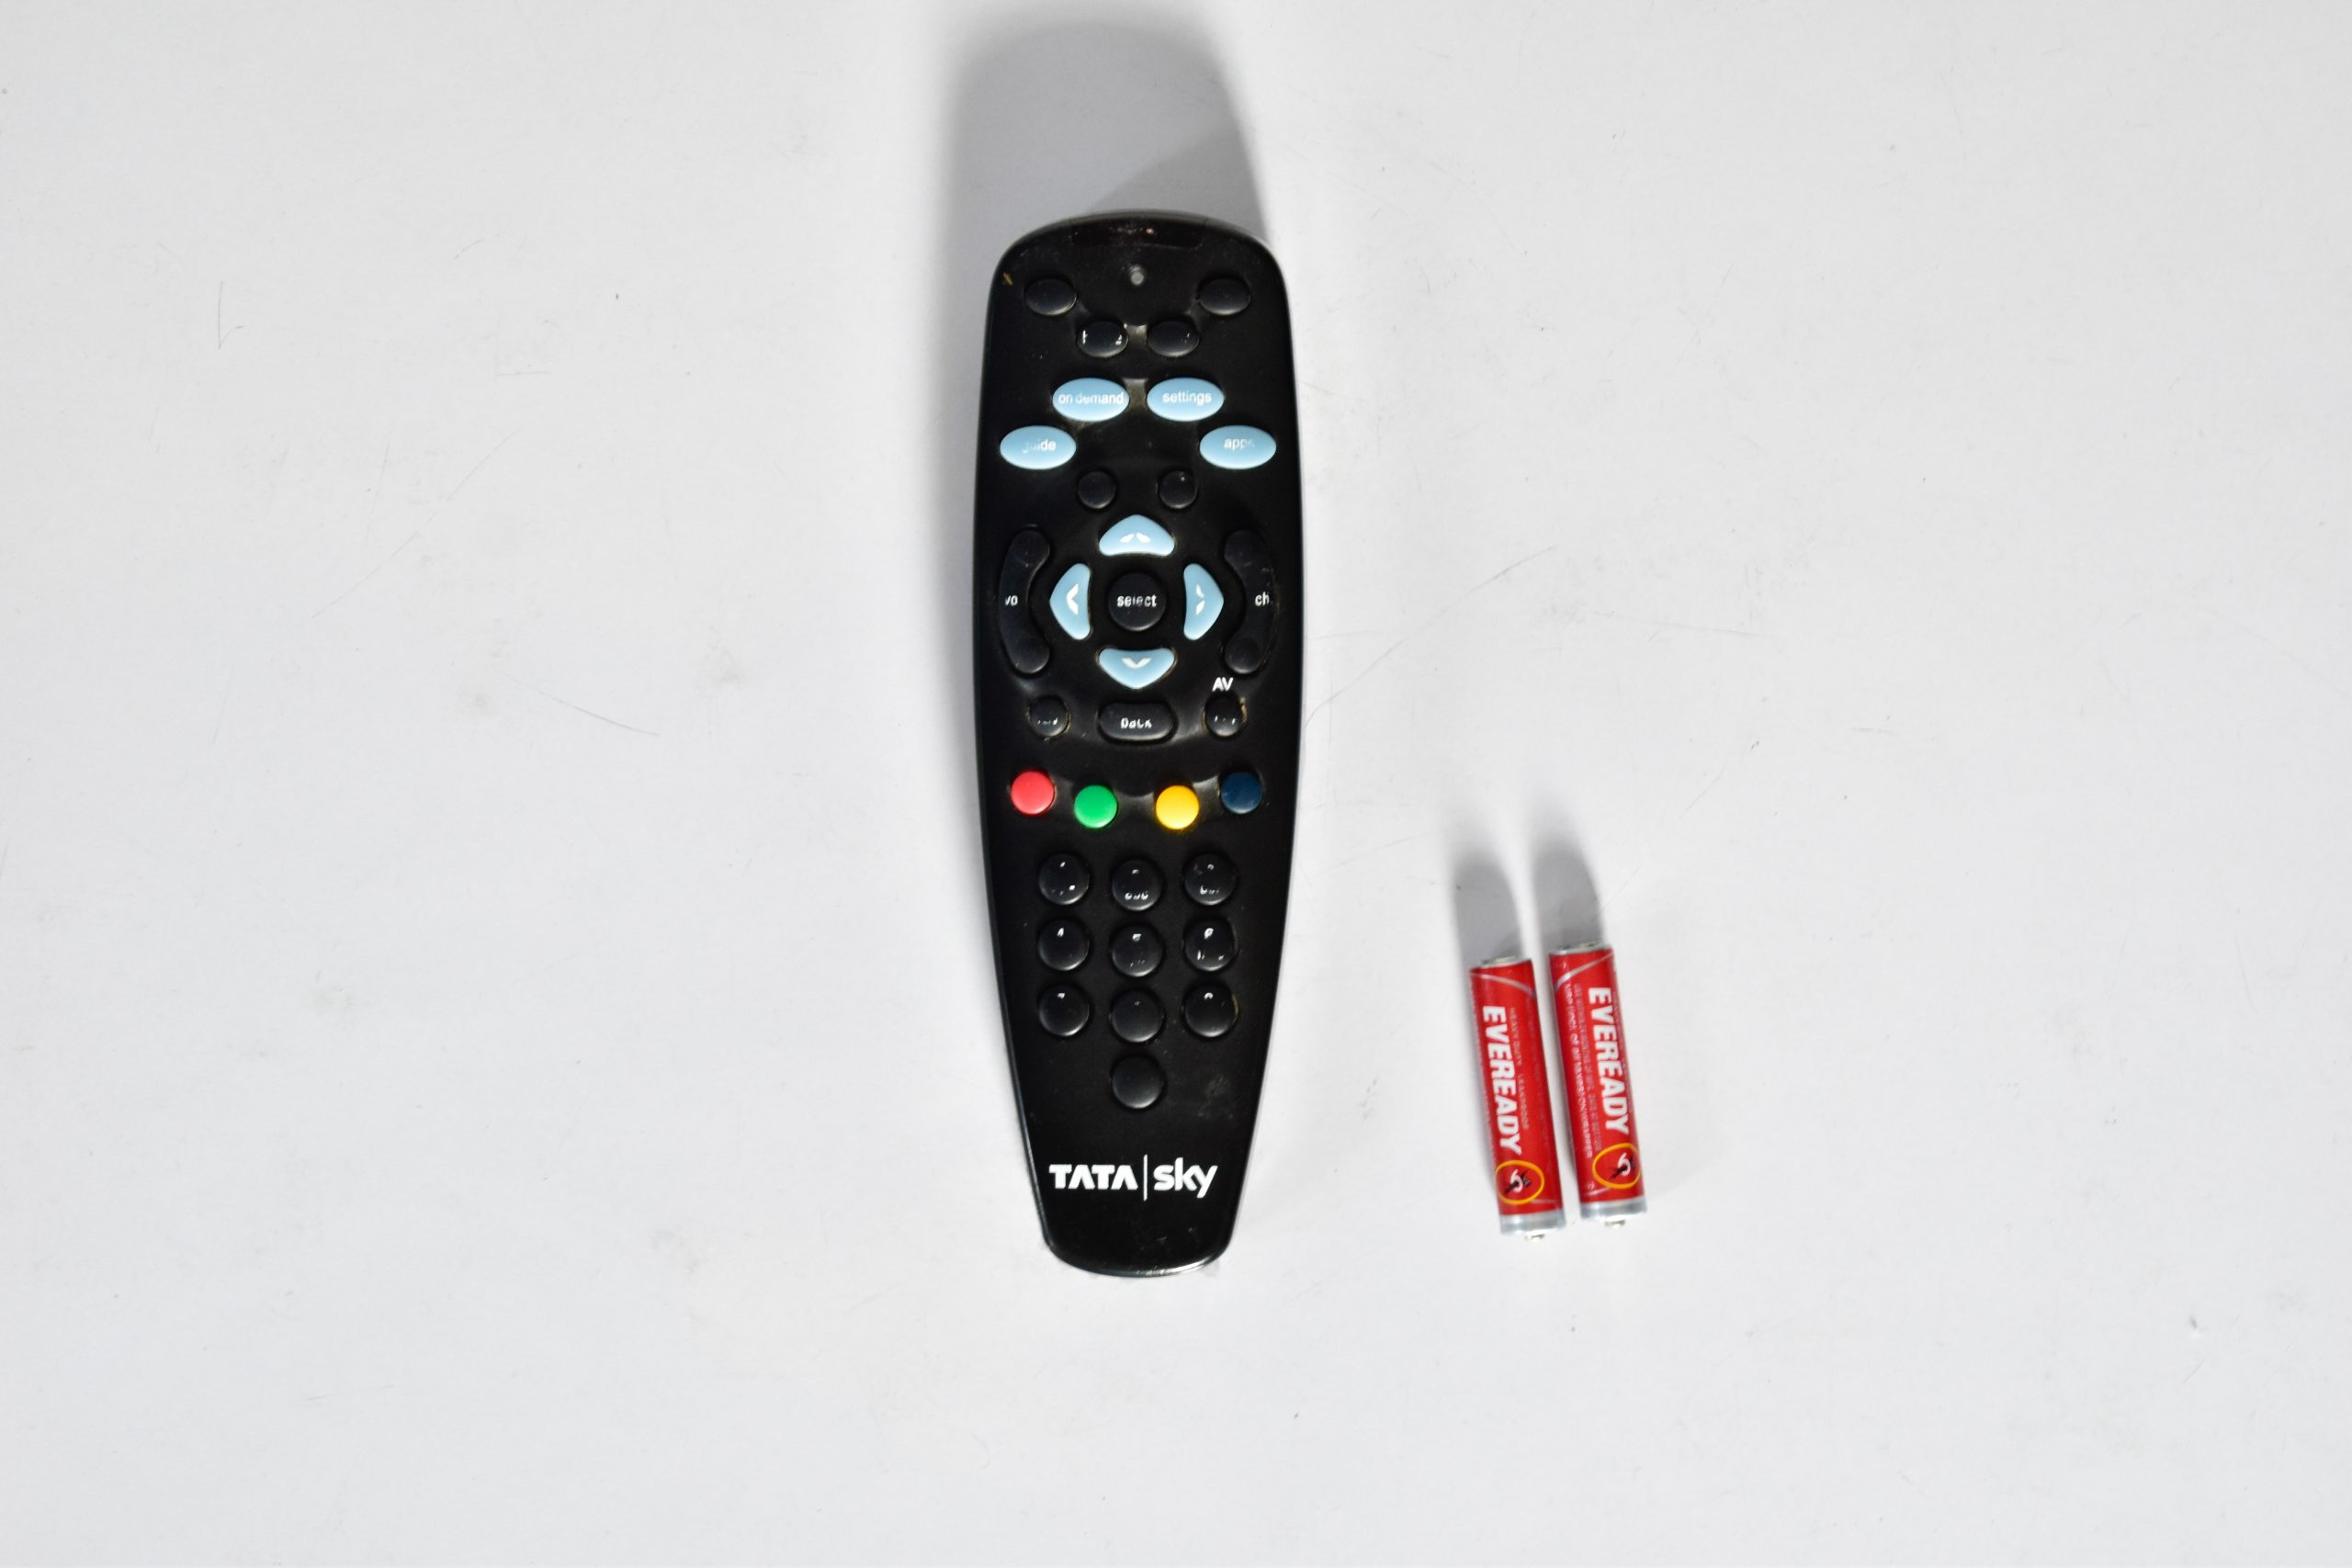 A TV remote and battery